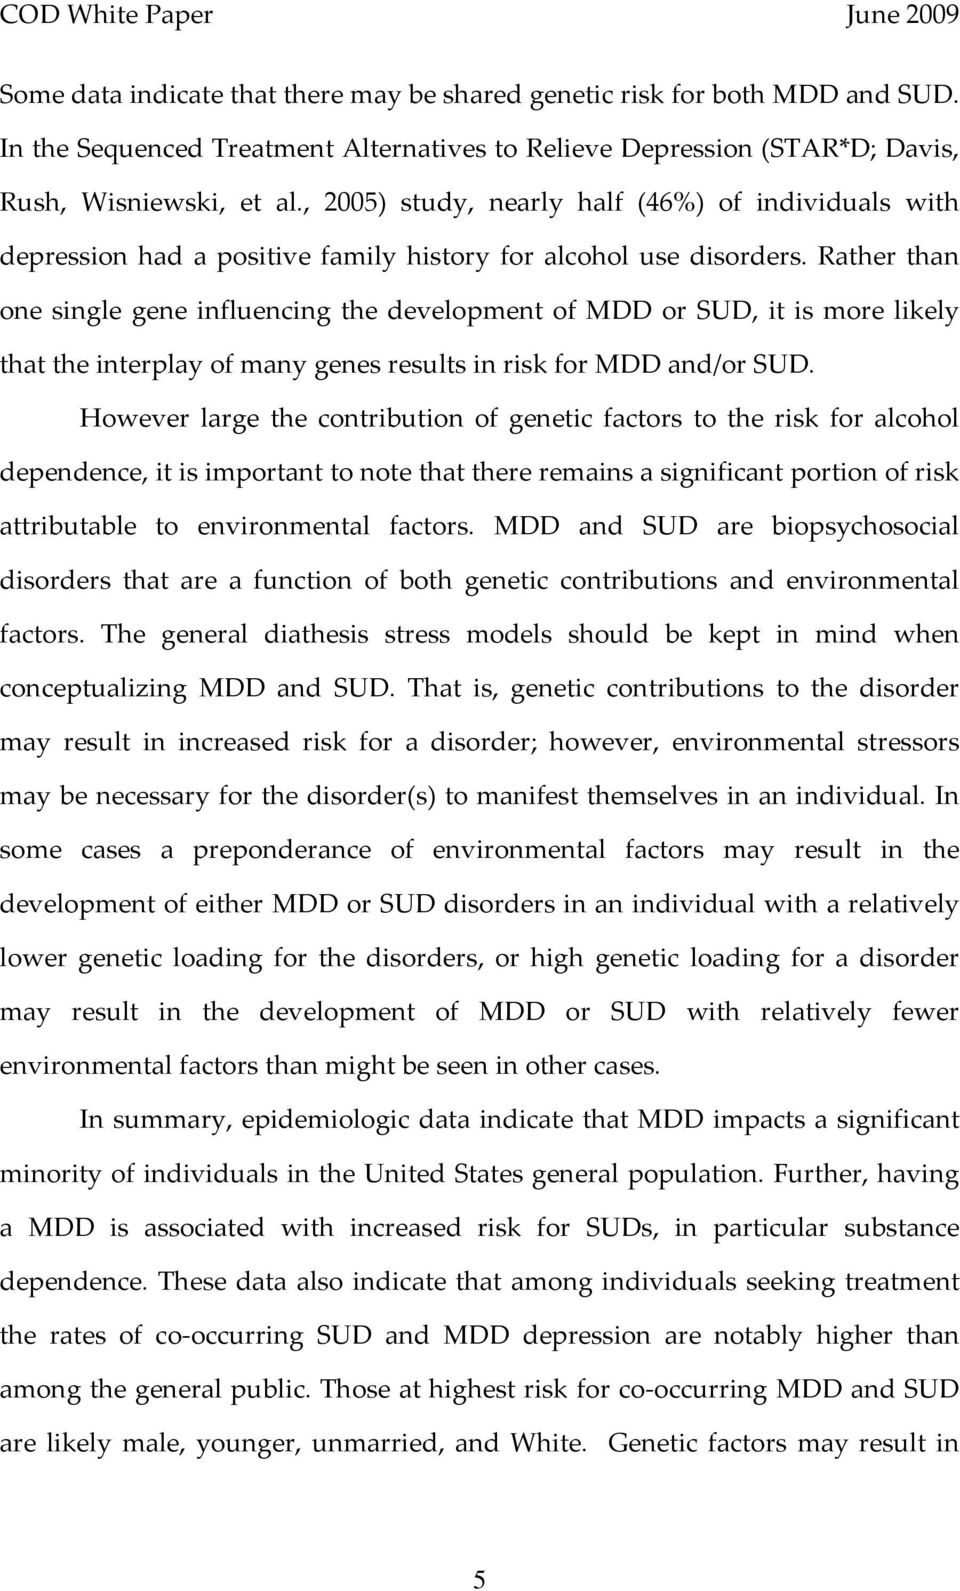 Rather than one single gene influencing the development of MDD or SUD, it is more likely that the interplay of many genes results in risk for MDD and/or SUD.